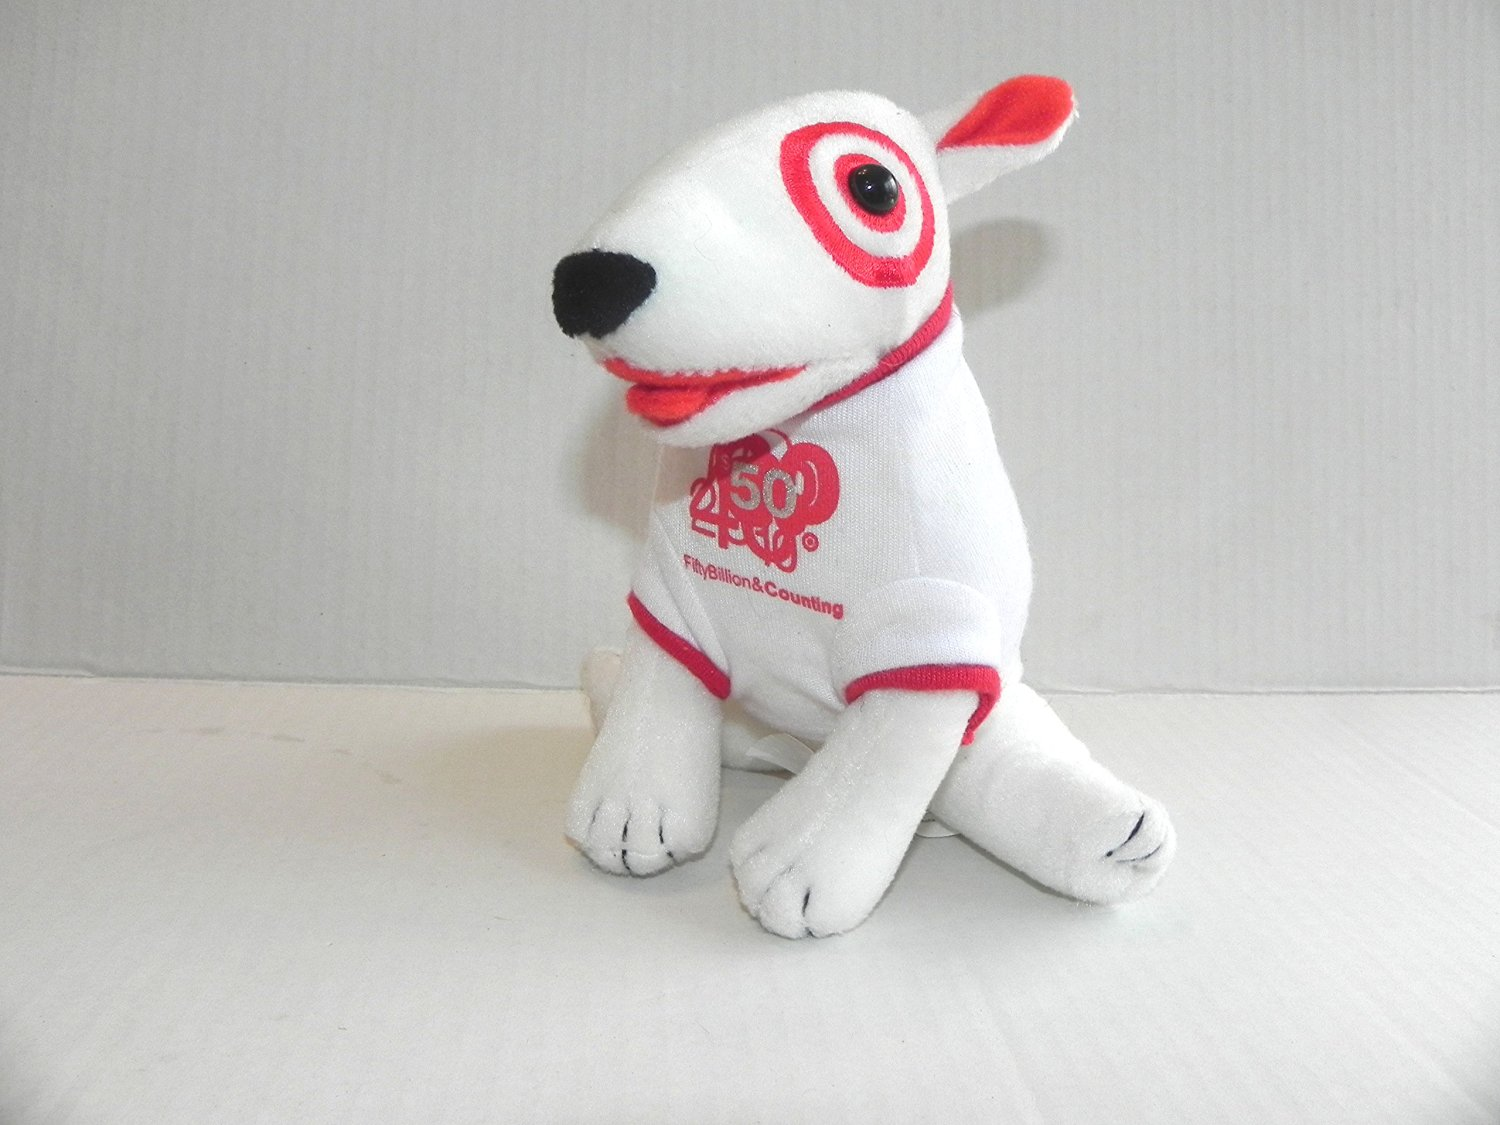 Get Quotations TARGET 50 Billion Counting BULLSEYE Plush Dog LE 2005